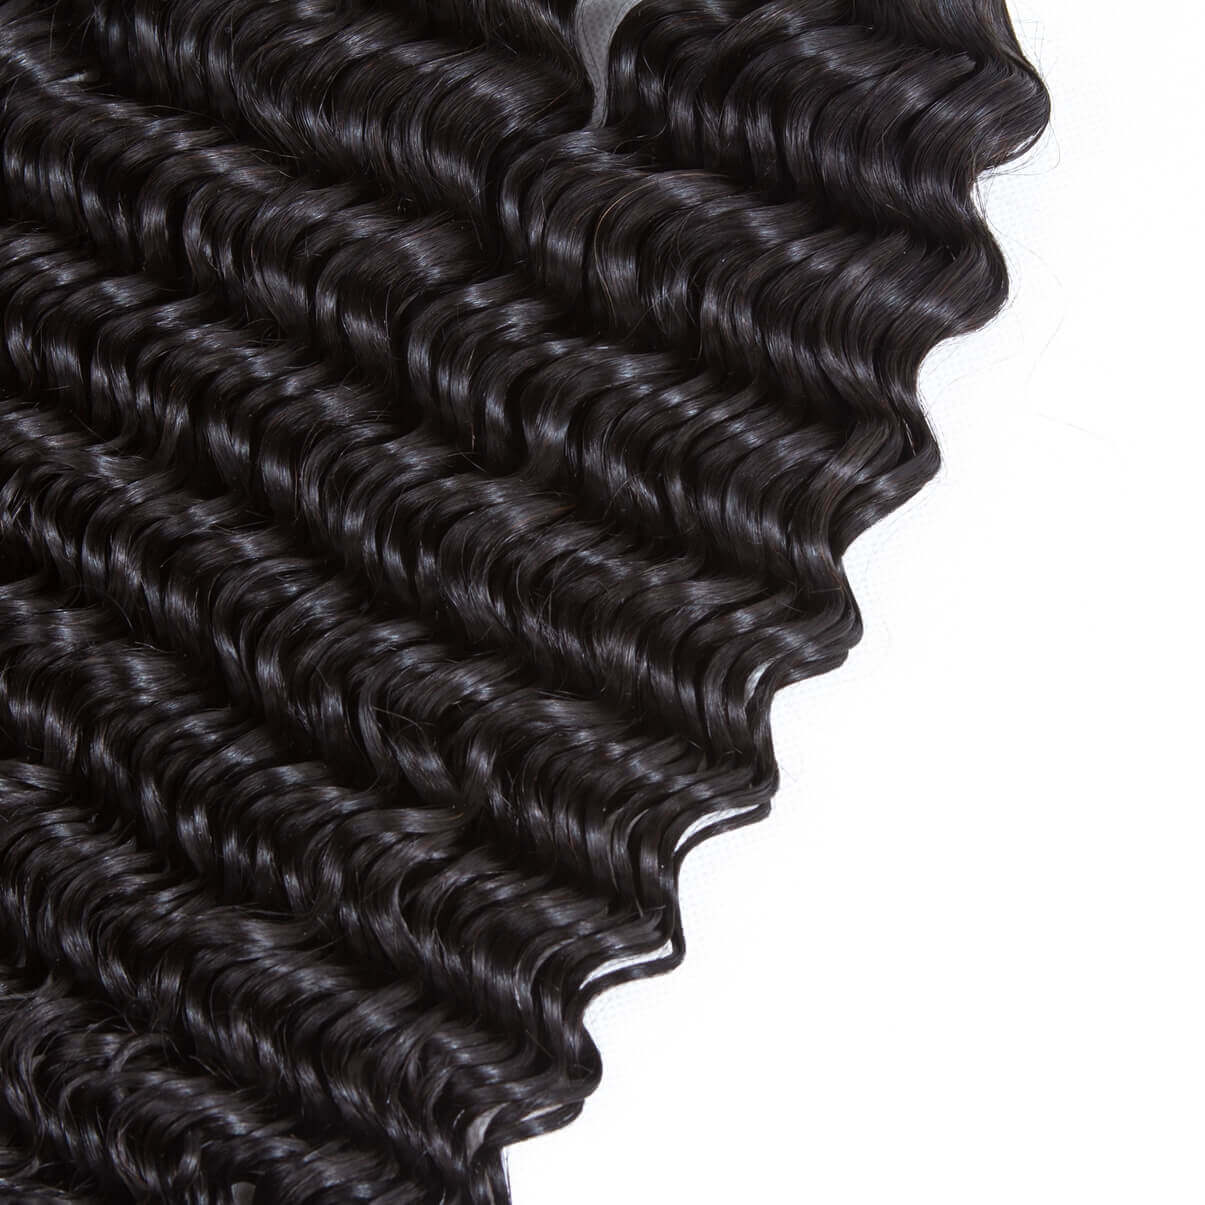 Lakihair 8A Brazilian Virgin Human Hair 4 Bundles With Lace Closure 4x4 Unprocessed Human Hair